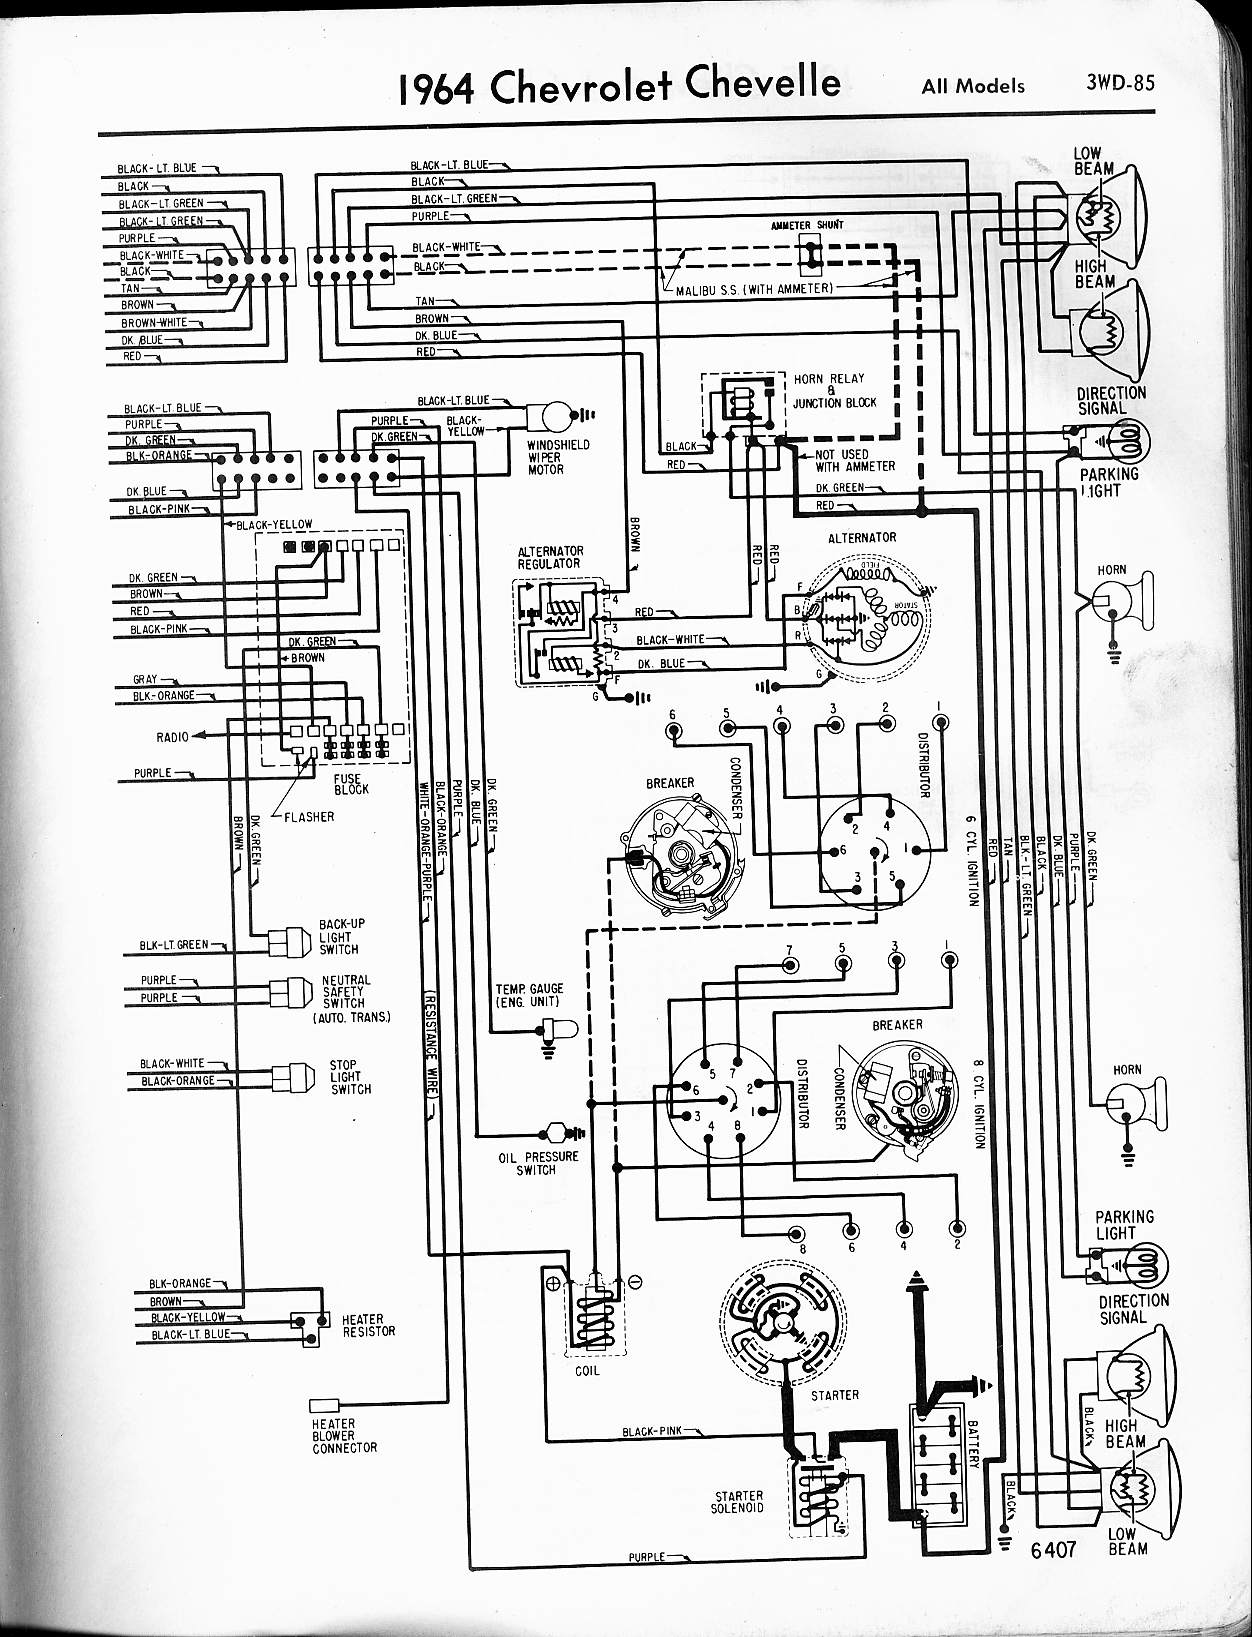 hight resolution of ac wiring diagram for 1970 chevelle automotive wiring diagrams 1968 chevelle engine wiring harness diagram 1970